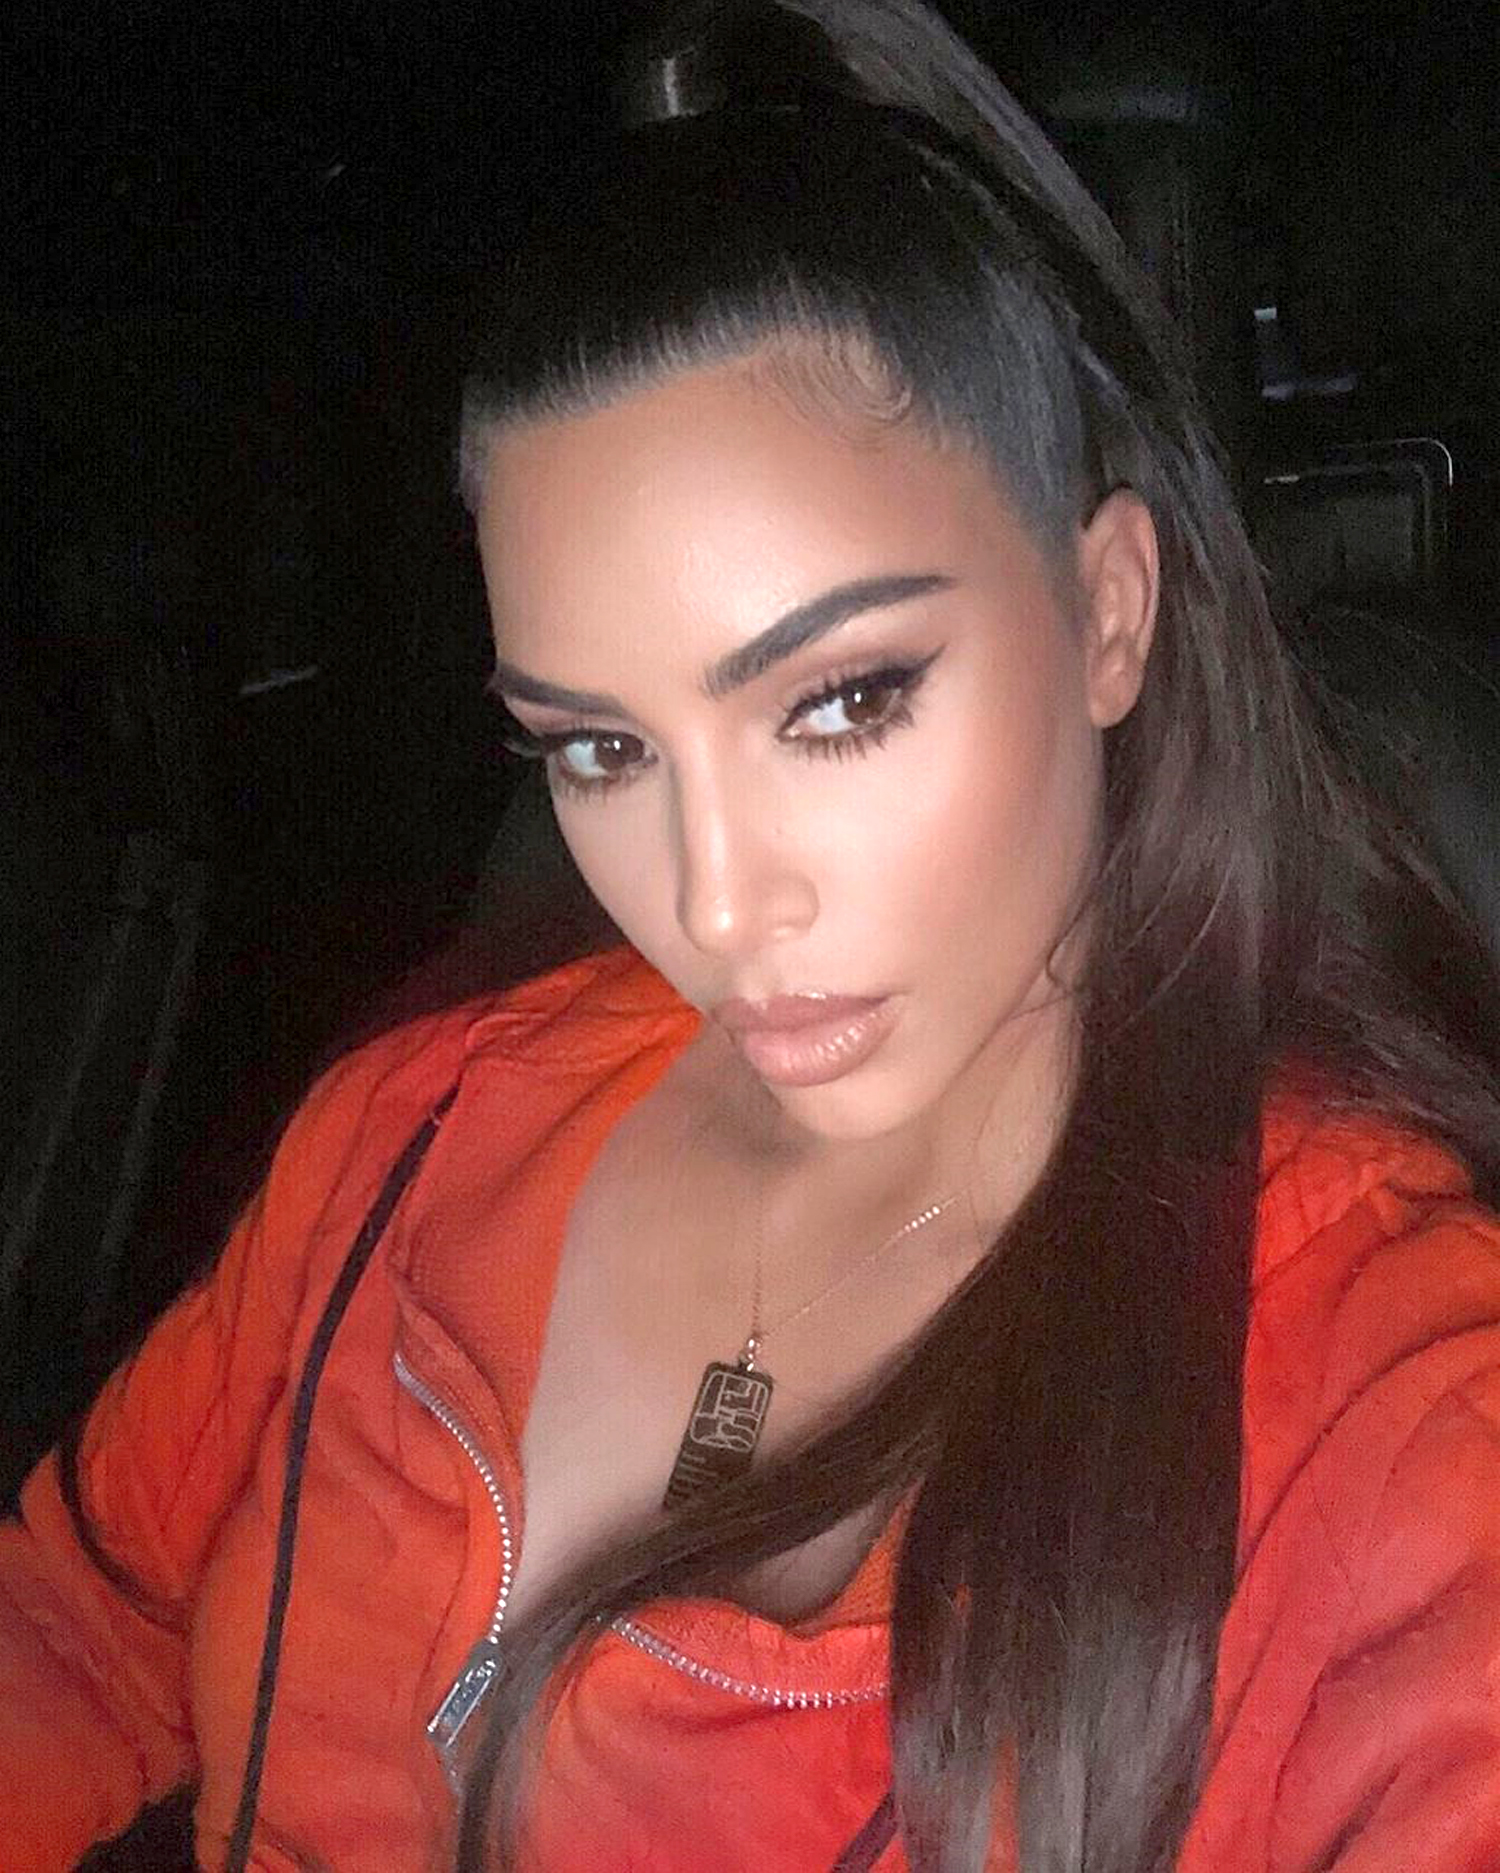 Best Kanye Gifts 2020 Christmas Kim Kardashian and Kanye West's Most Over the Top Gifts and